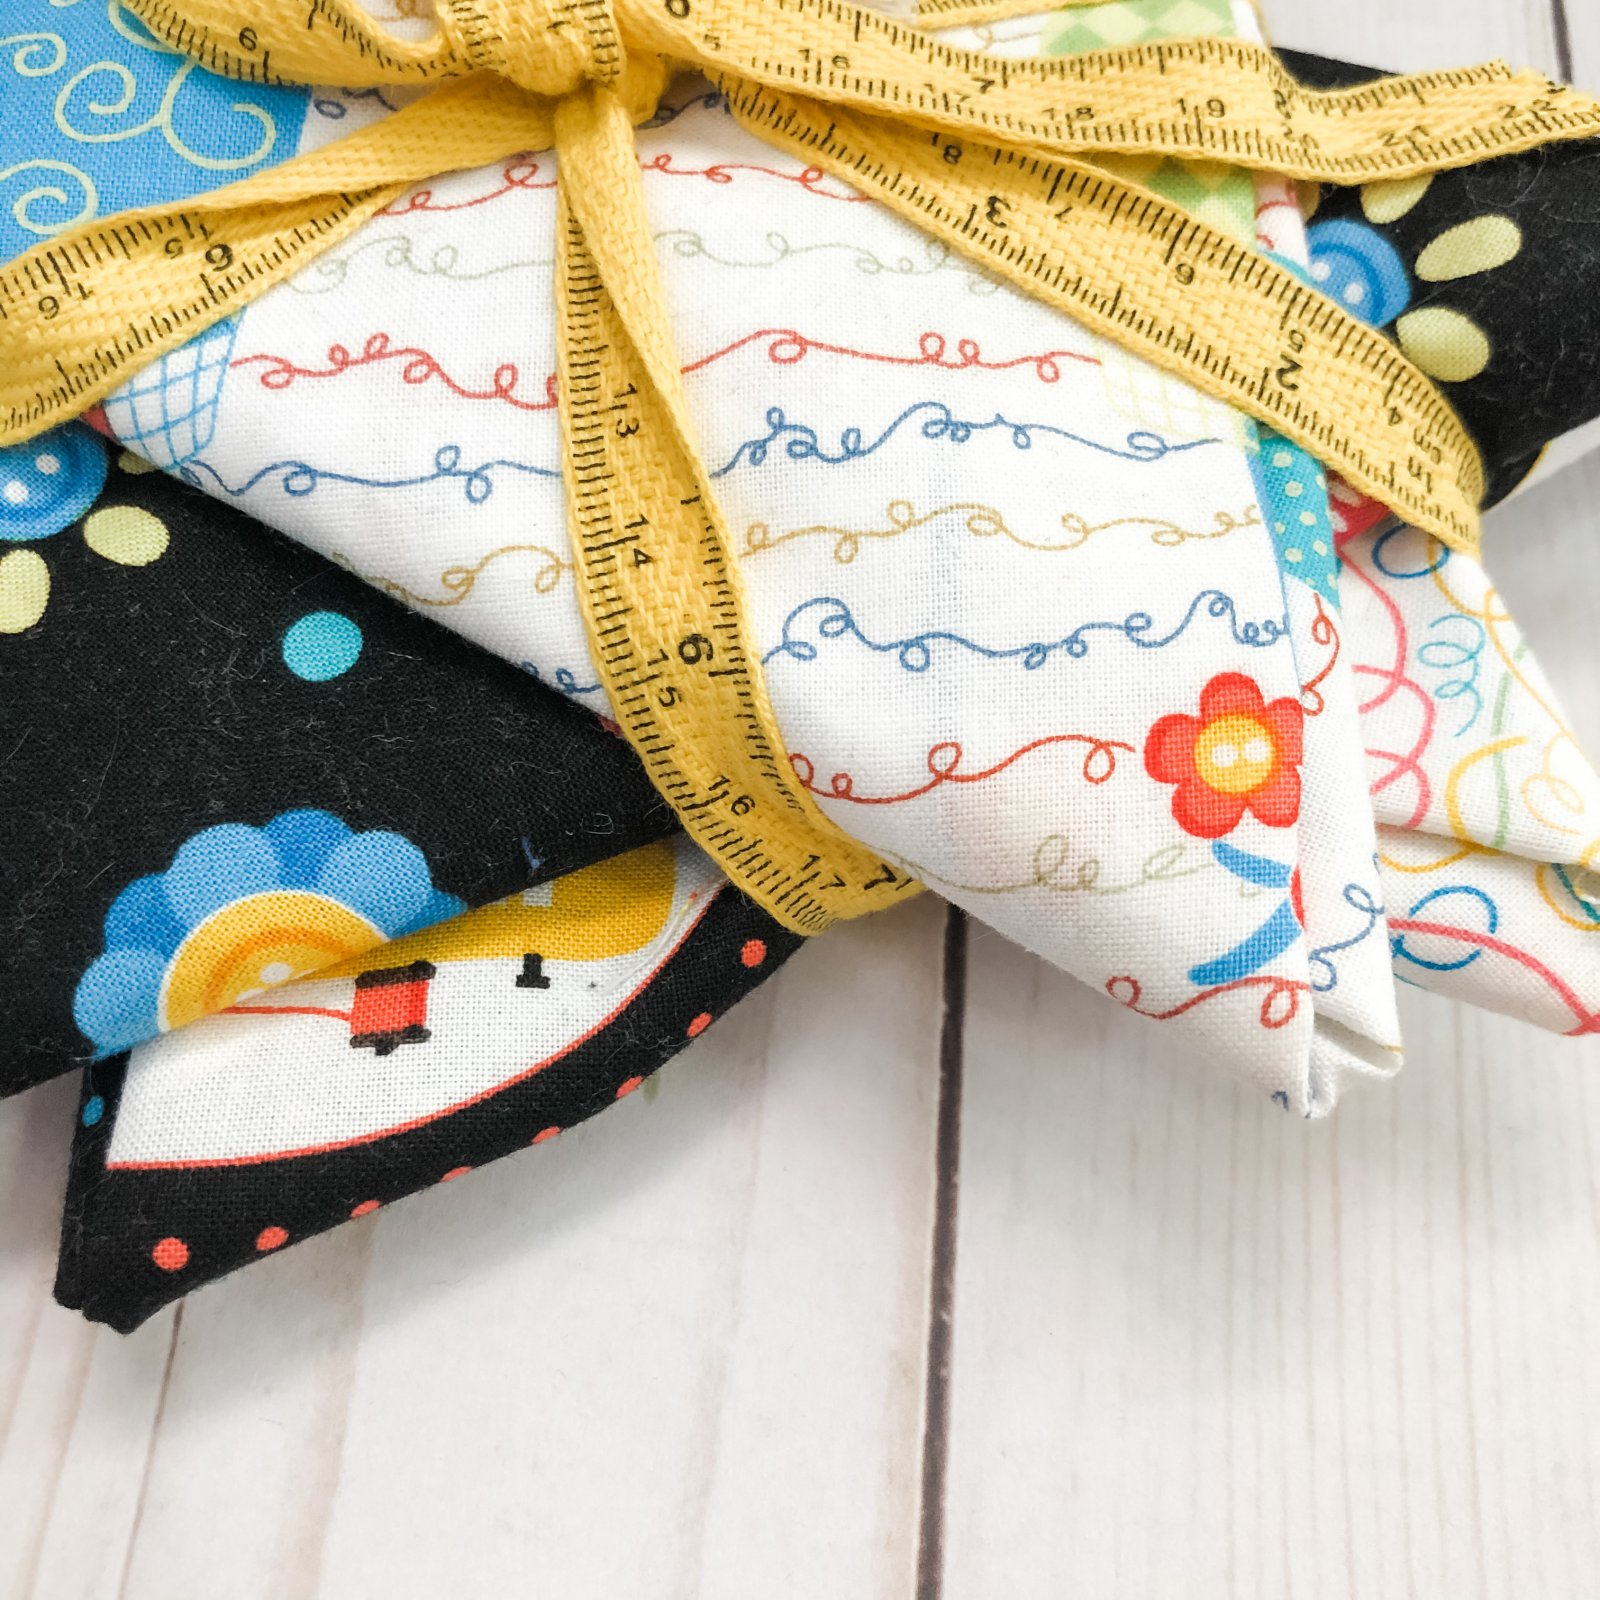 Sew Excited! 4 FQ Bundle